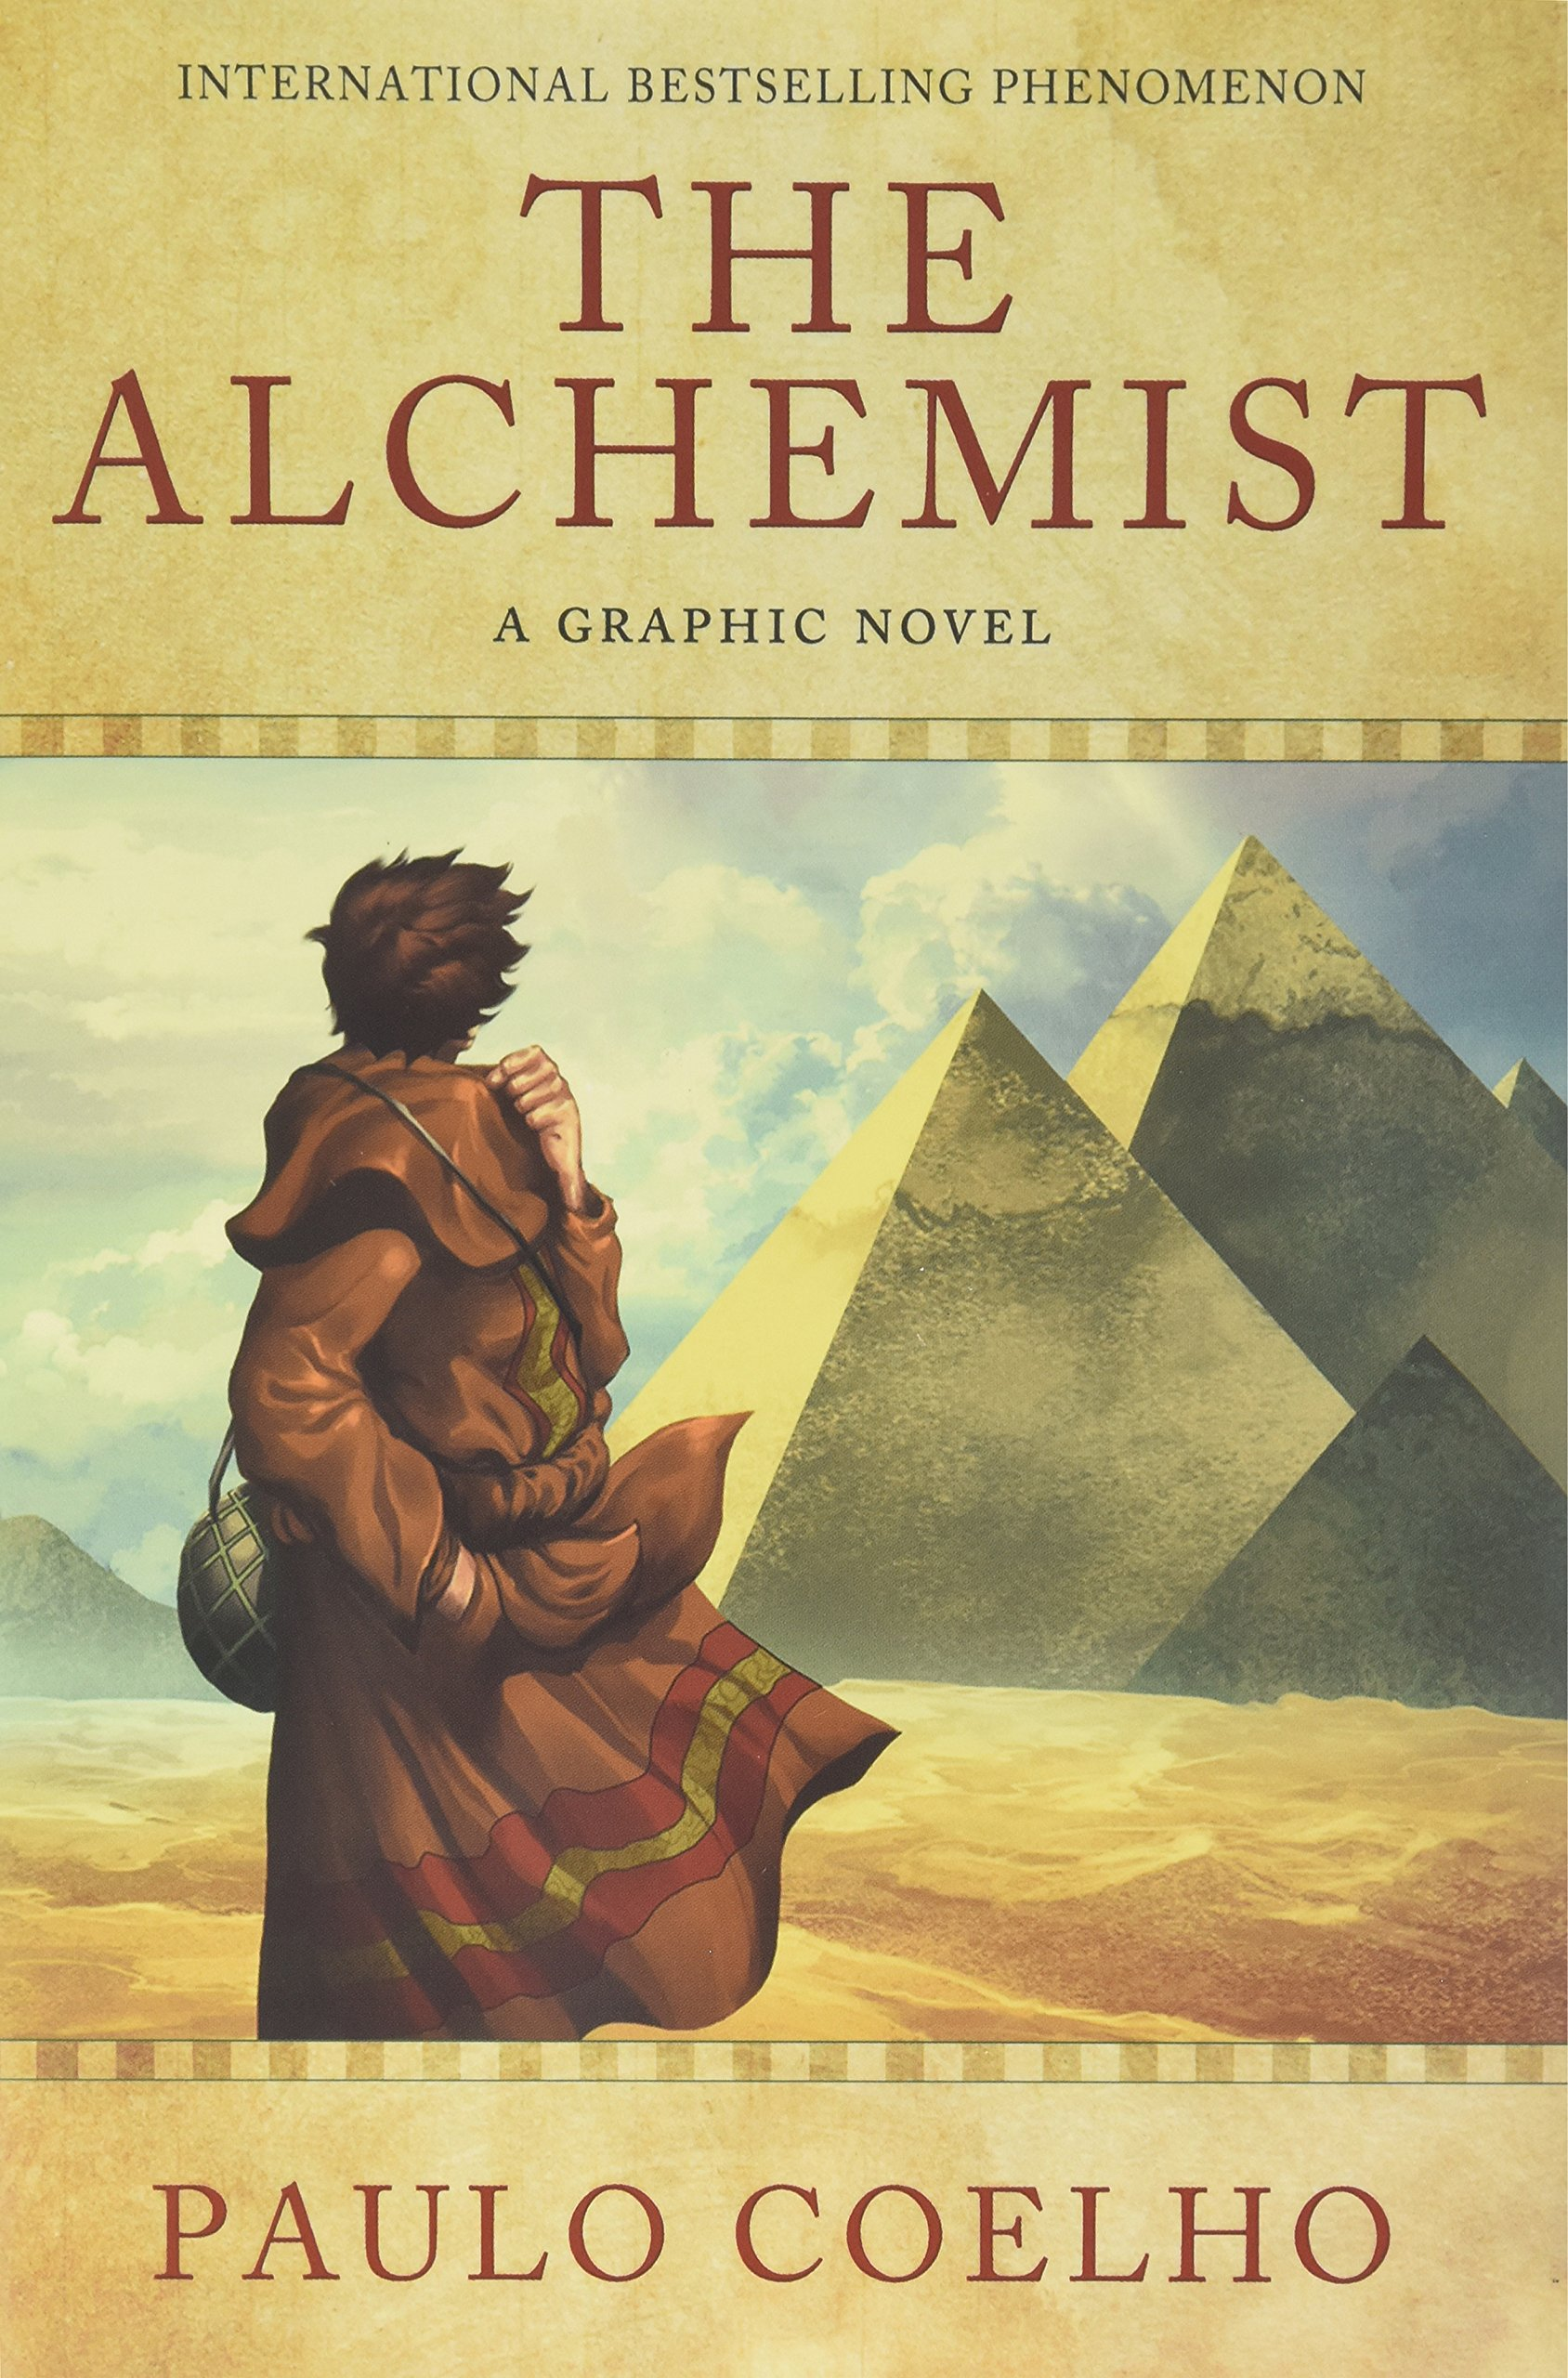 the alchemist a graphic novel in paulo coelho books